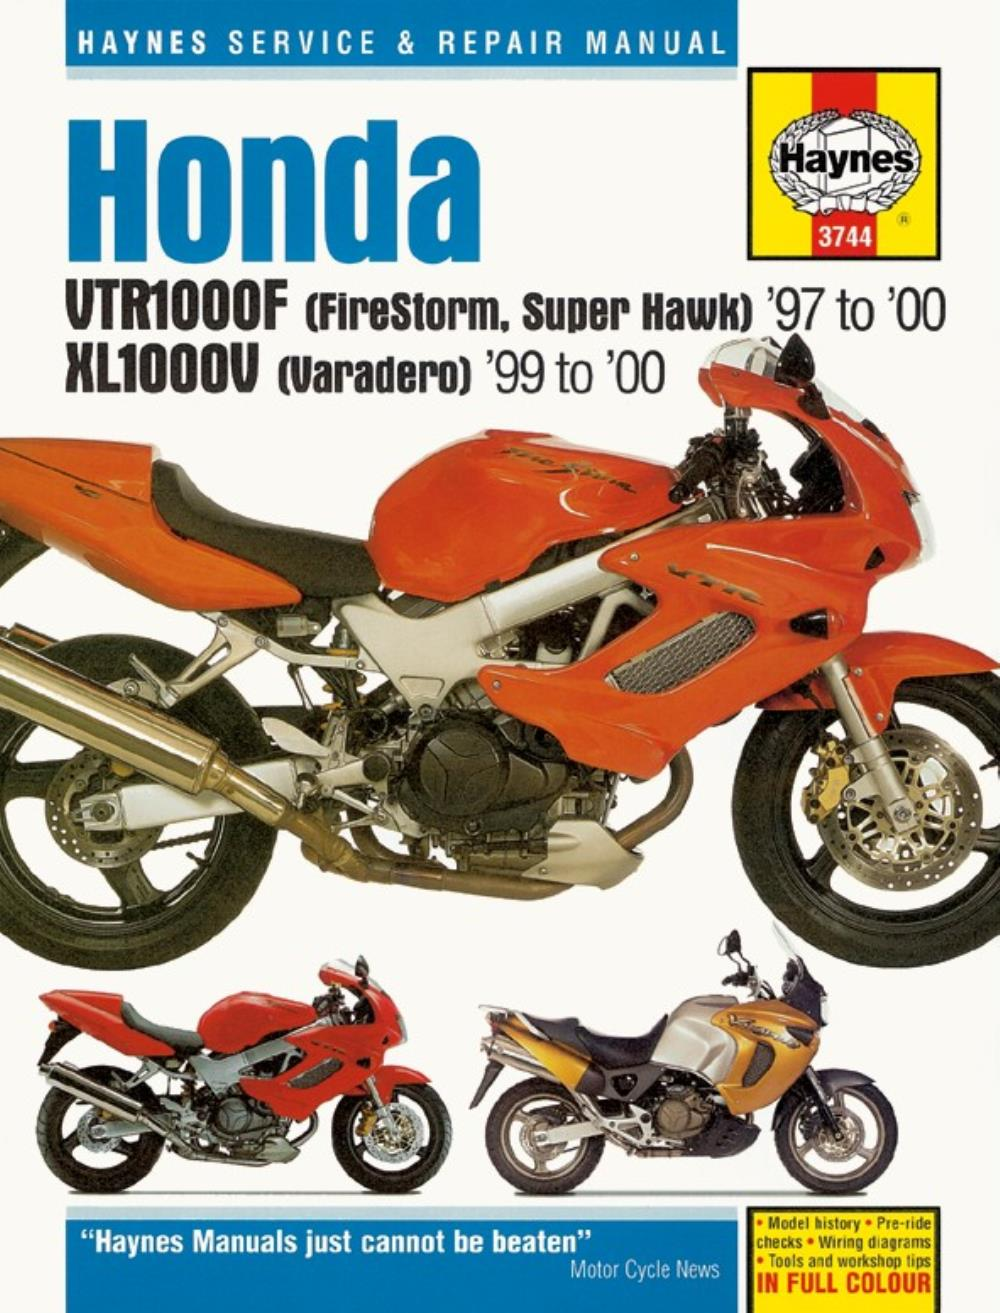 manual haynes for 2007 honda xl 1000 v7 varadero ebay rh ebay co uk 05 Honda XL Honda XL